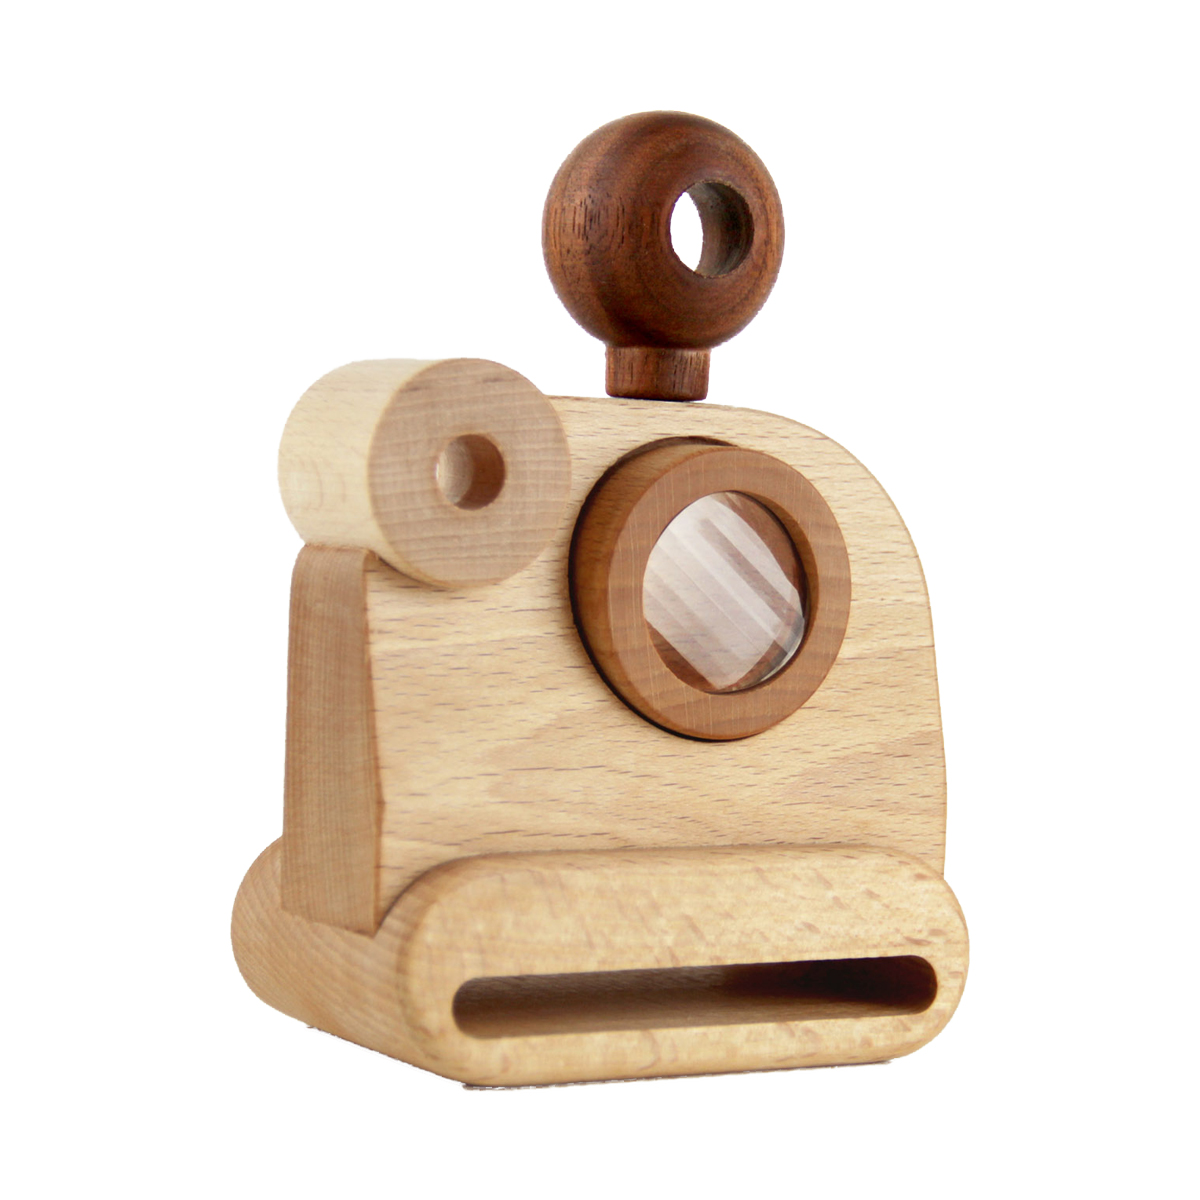 Father's Factory polaroid wooden camera toy